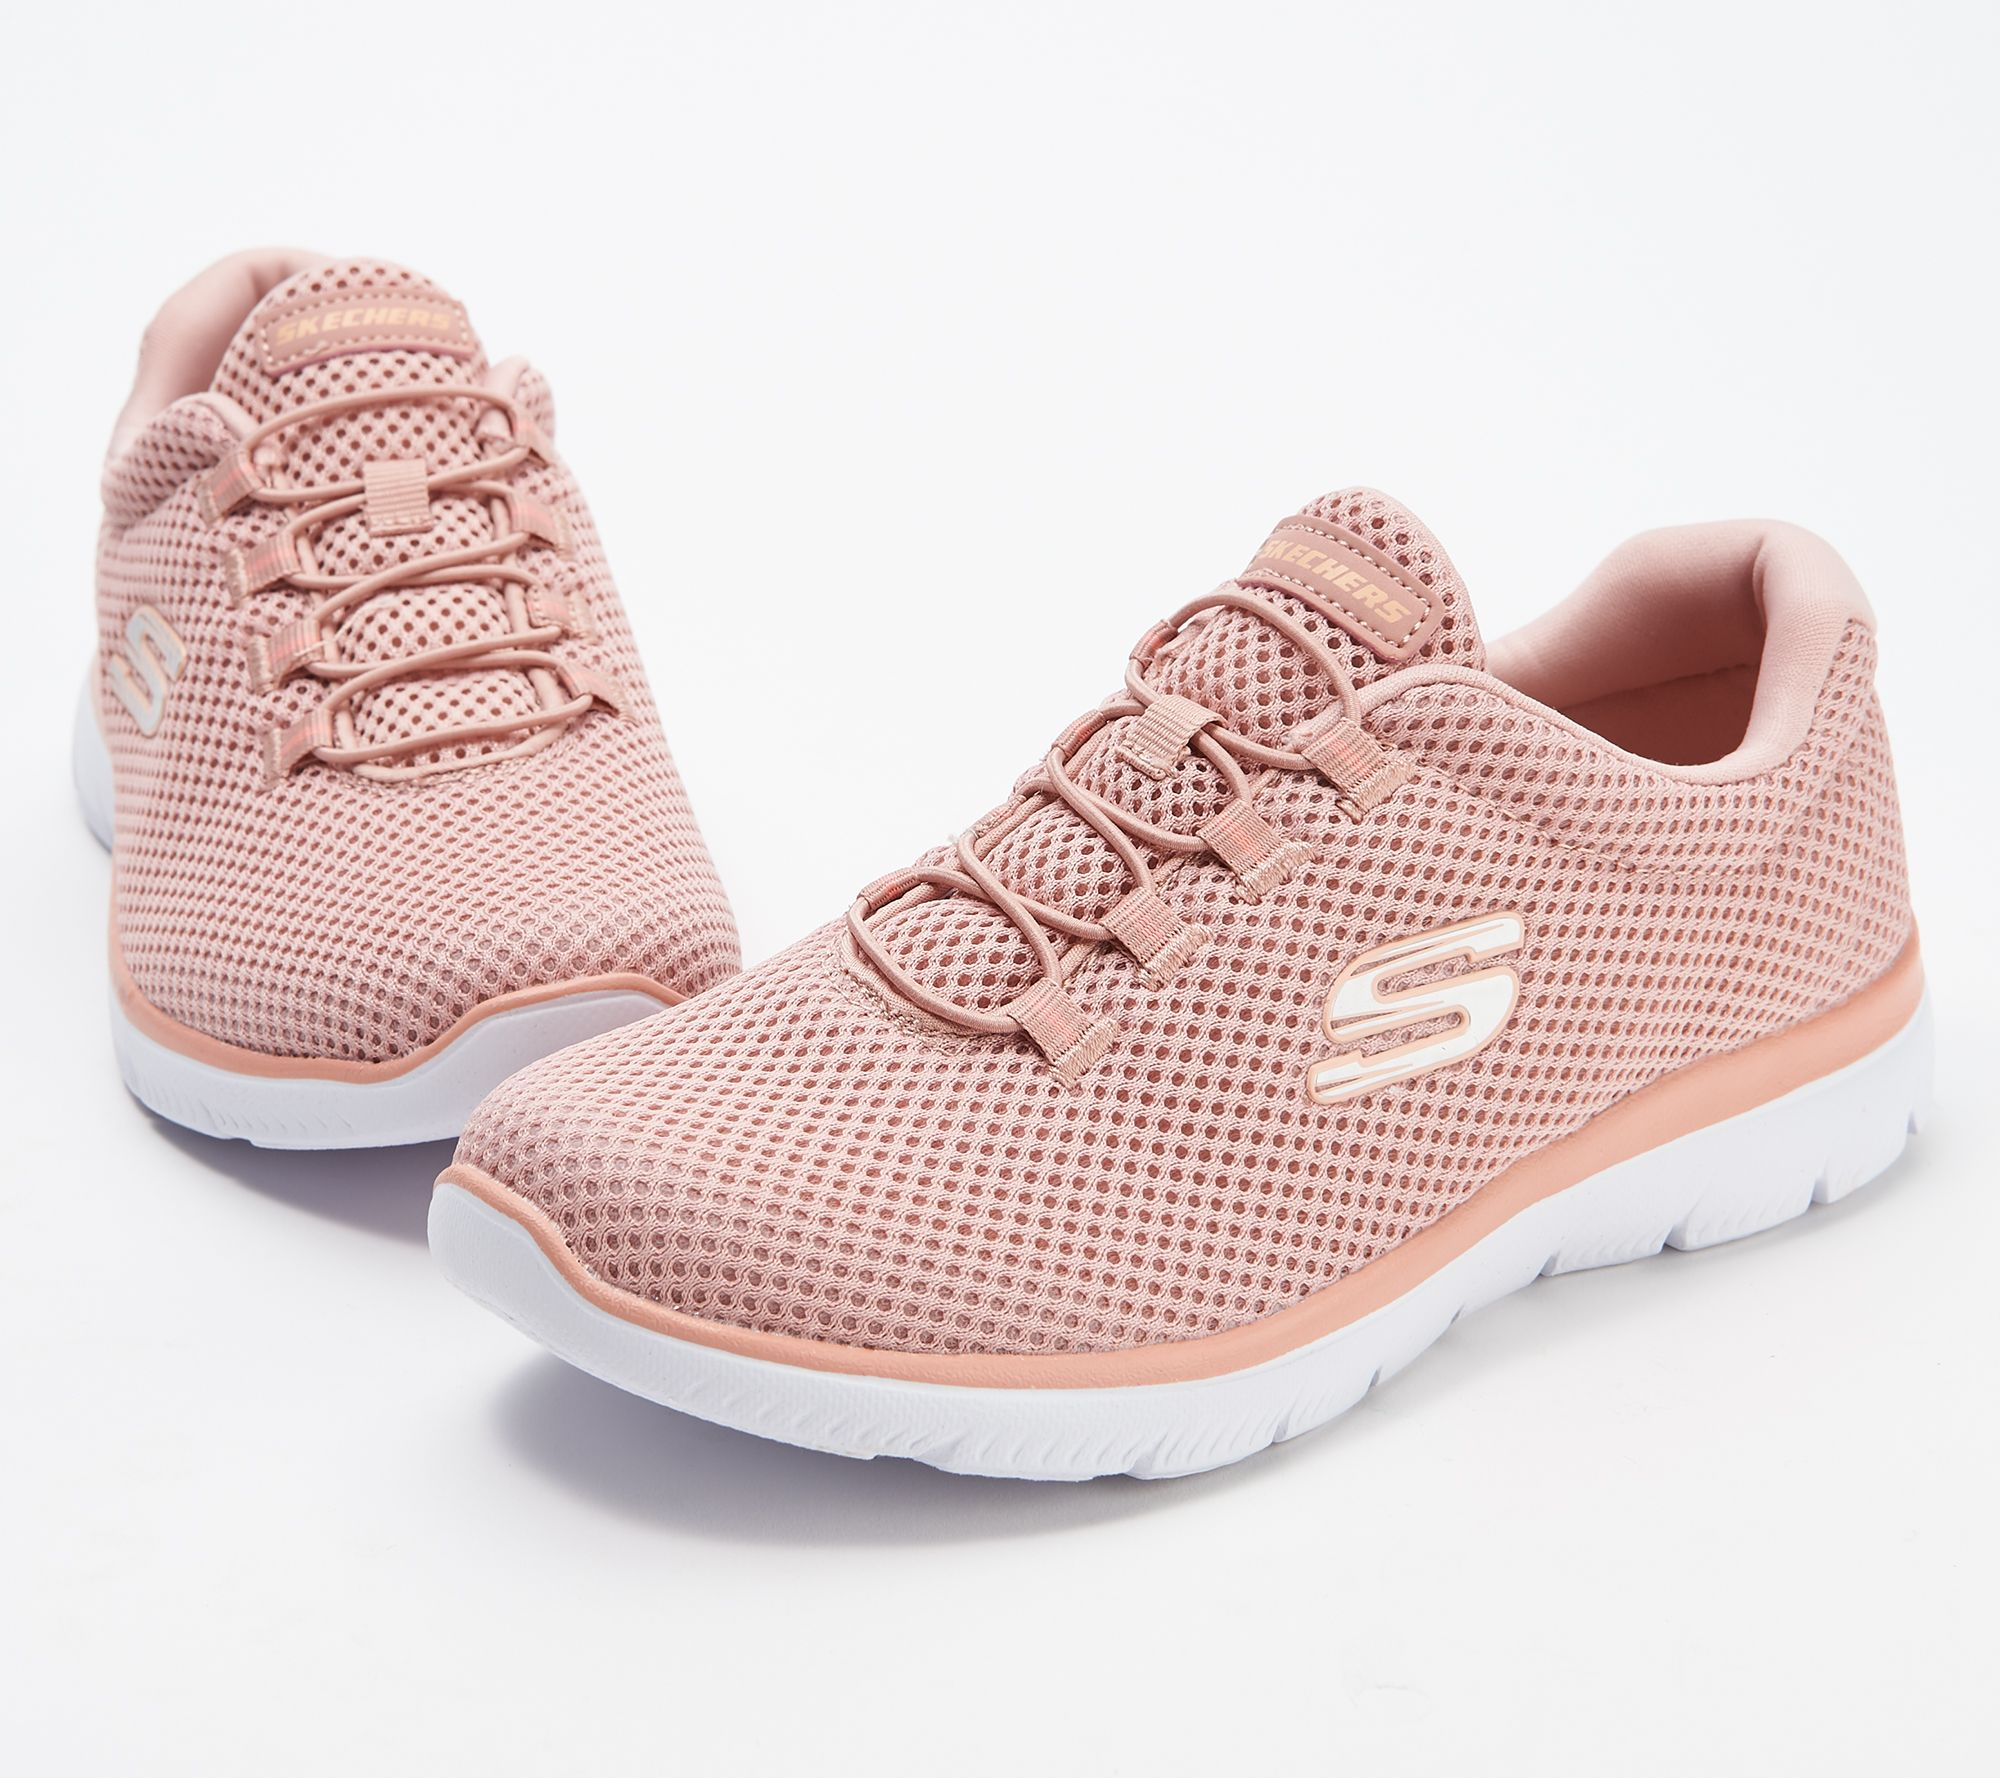 Skechers Pink Mesh Bungee Summits Slip On Sneakers Shoes New Sale